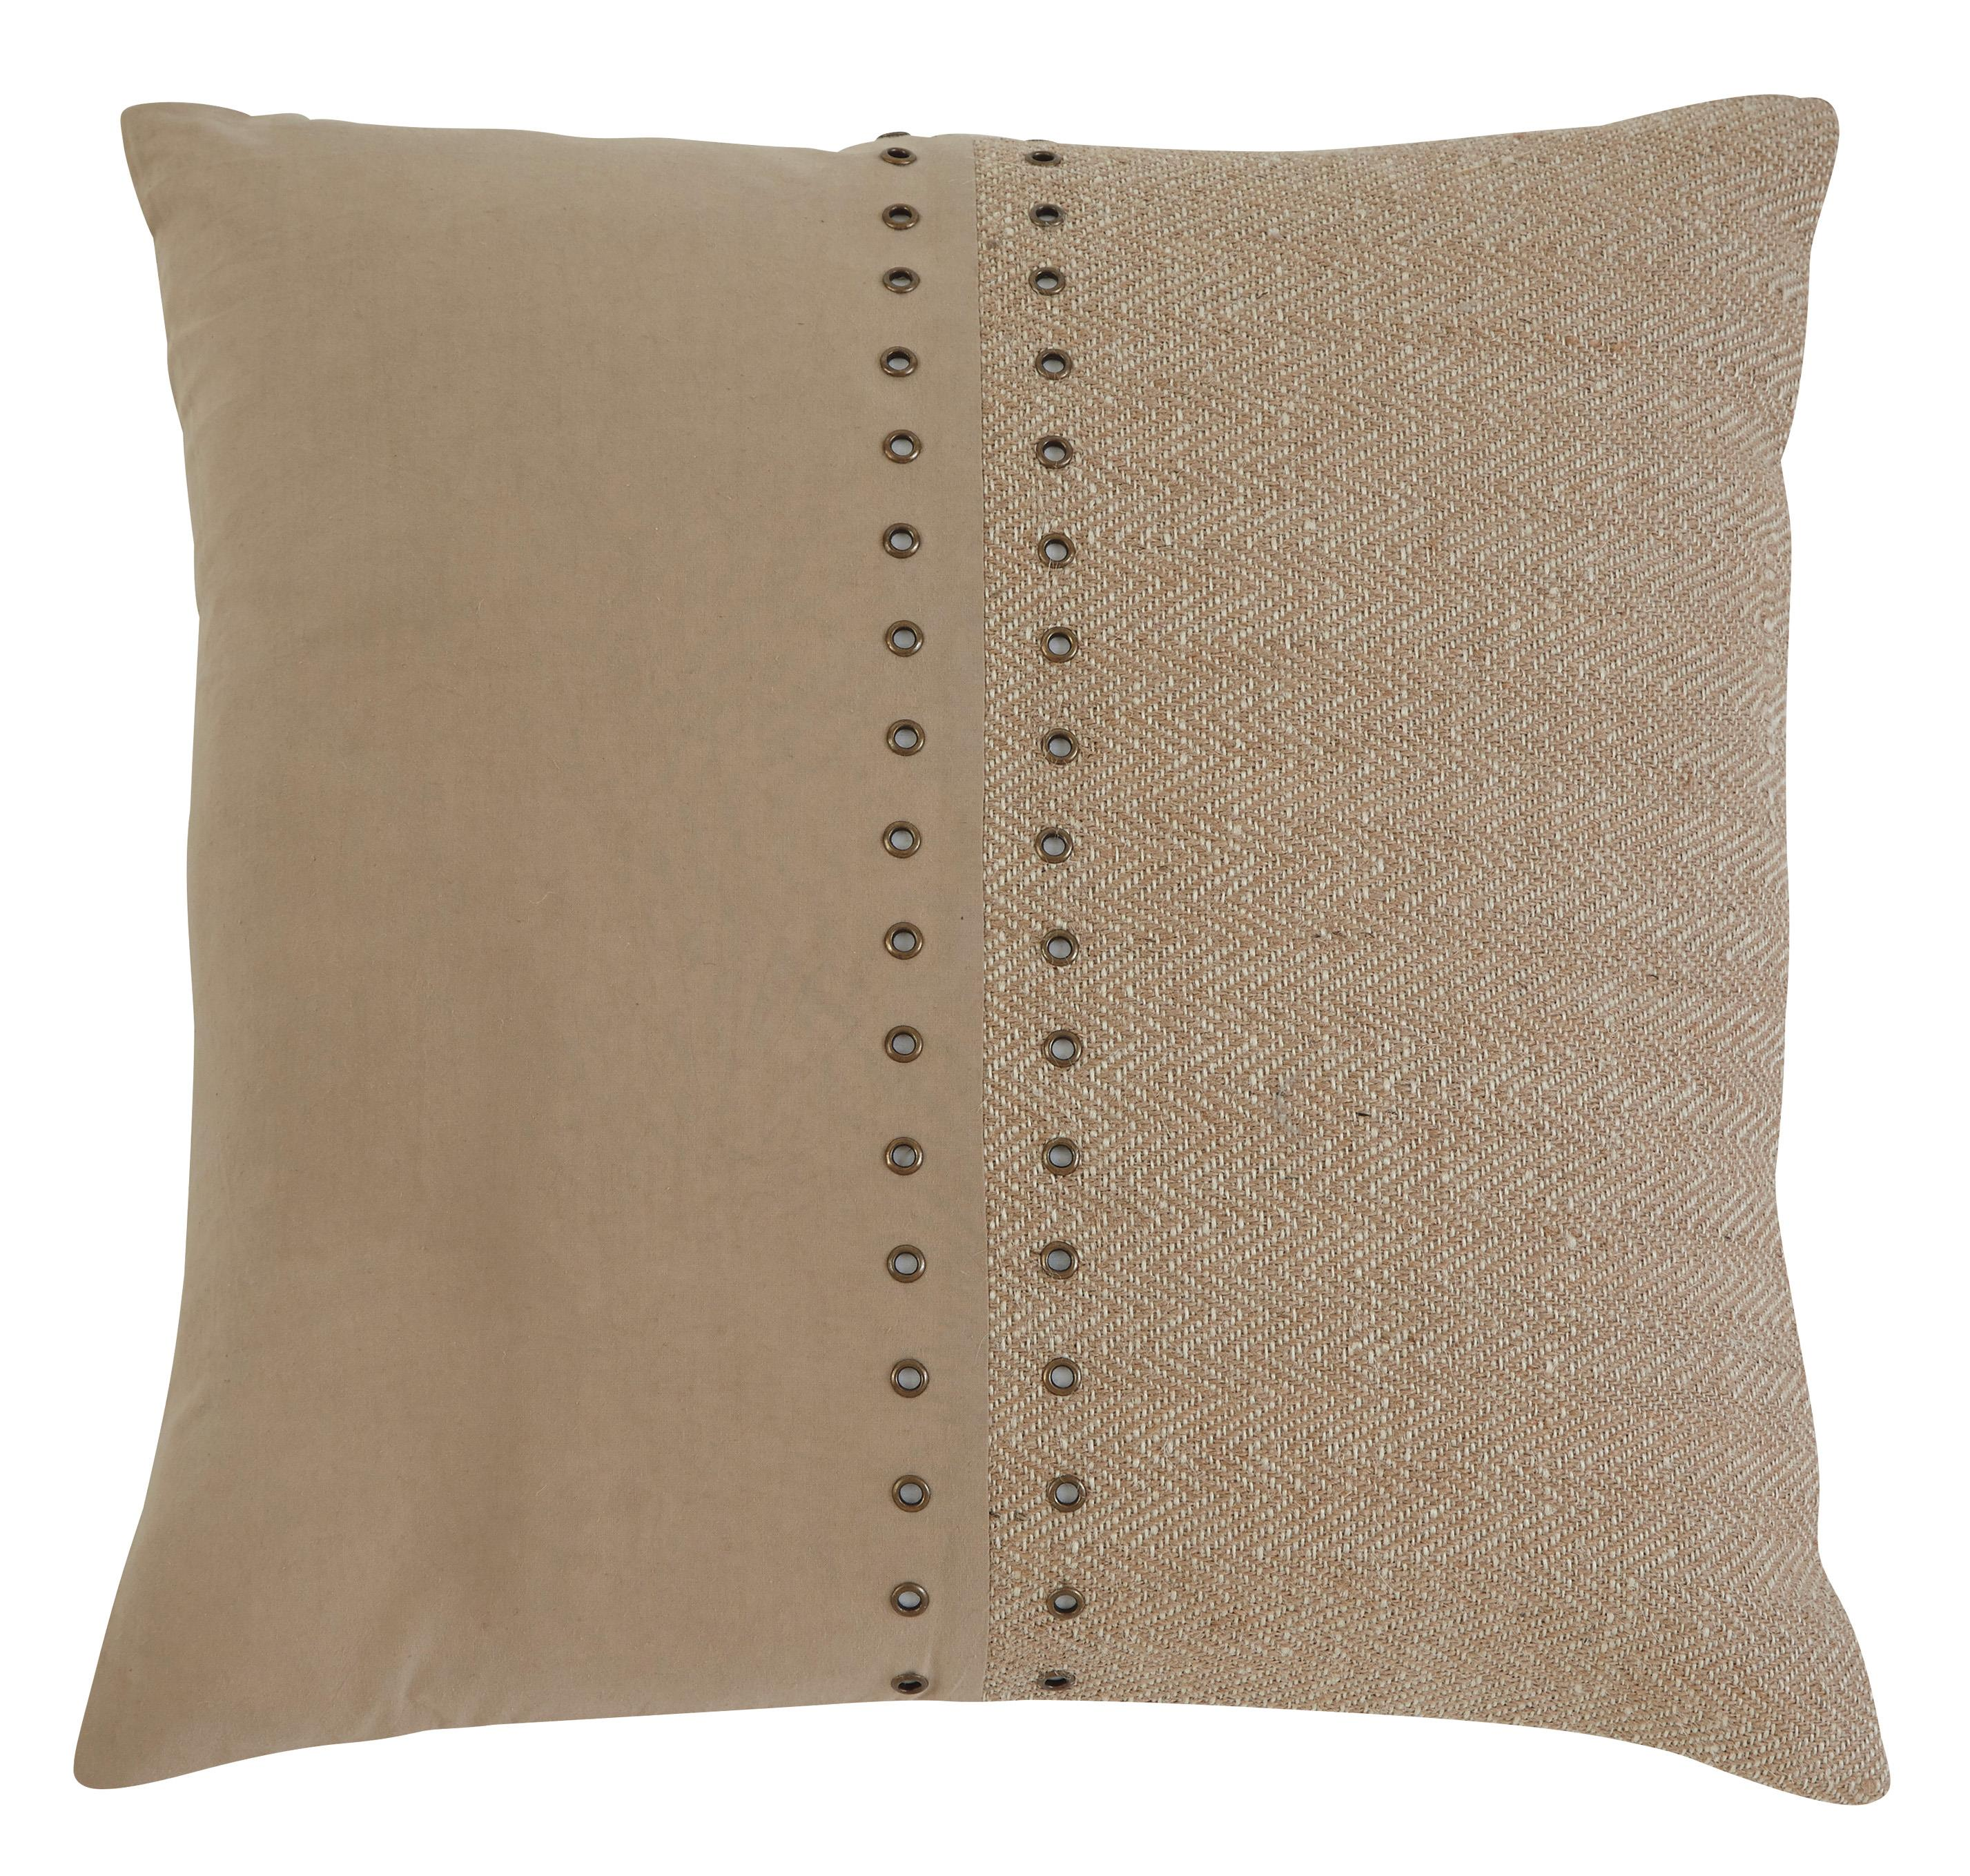 Signature Design by Ashley Pillows Textured - Natural Pillow - Item Number: A1000318P